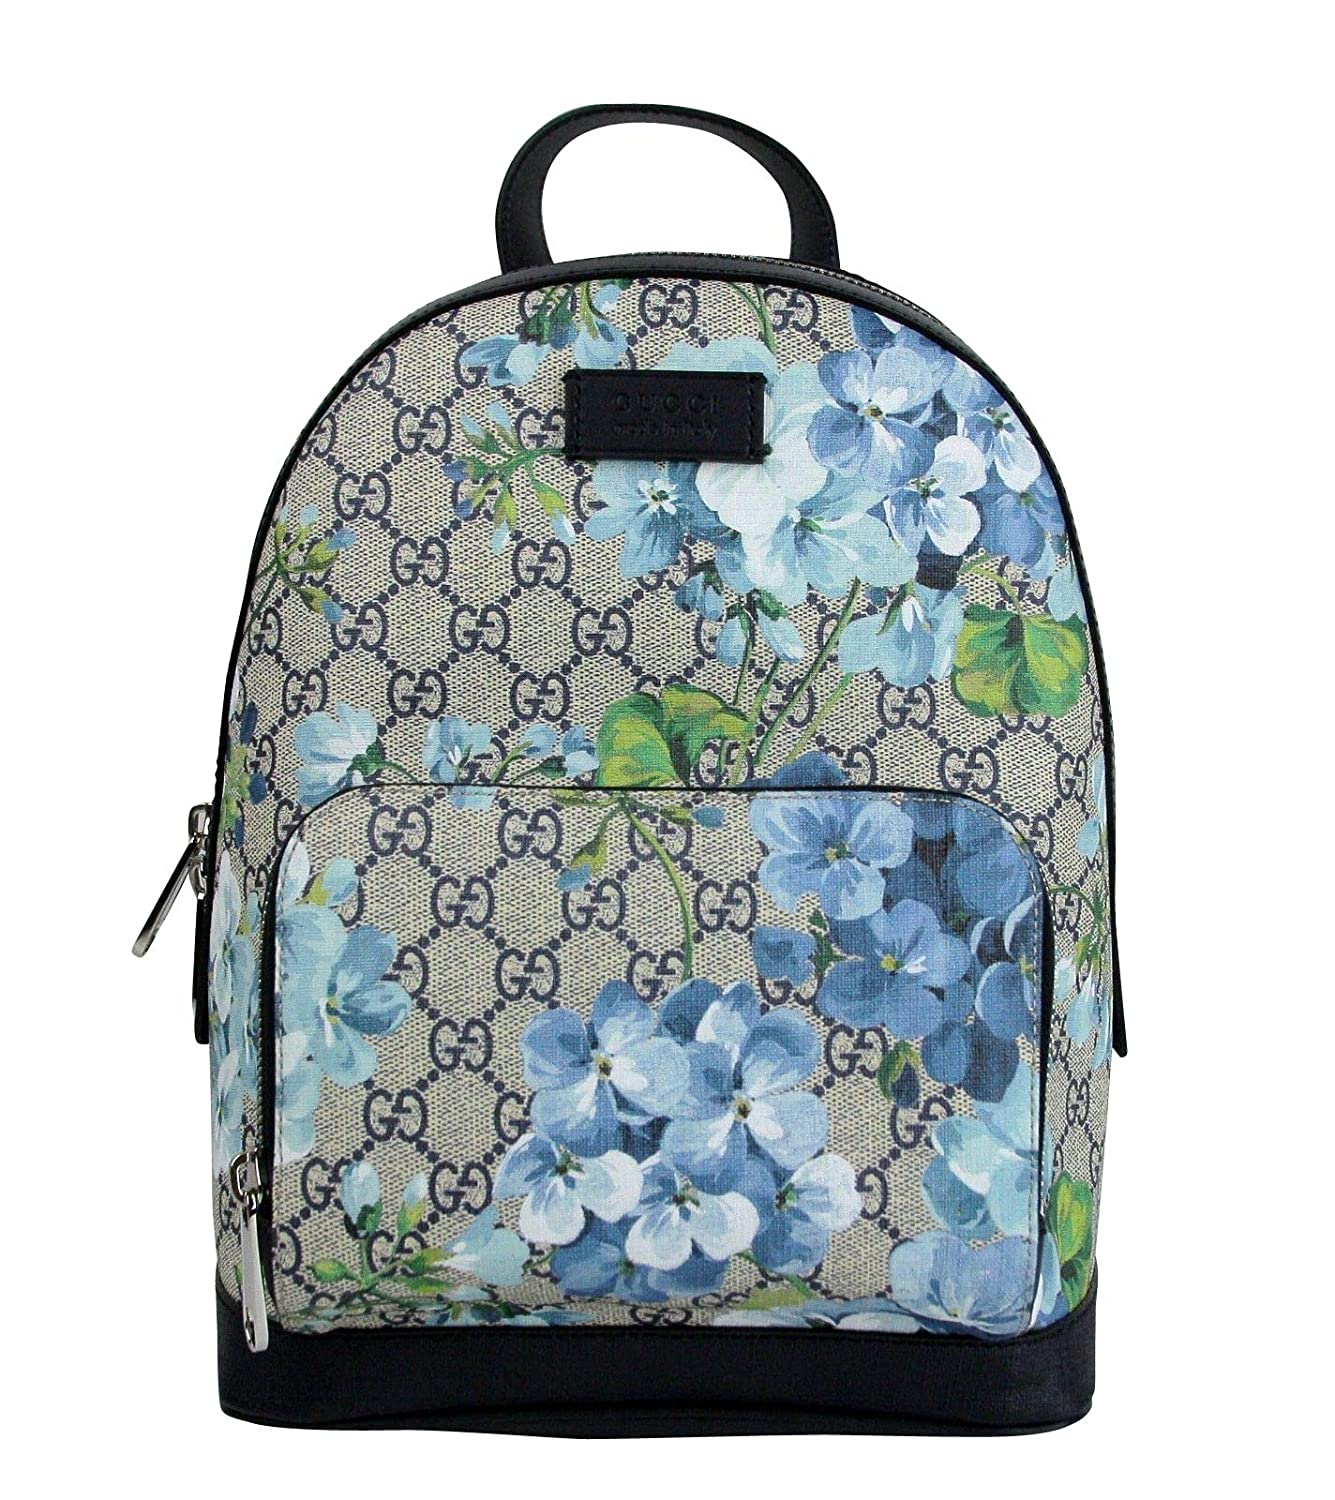 d7bdb34845af0b Amazon.com: Gucci Unisex Beige/Blue Bloom GG Coated Canvas Small Backpack  with Box 427042 8493: Clothing